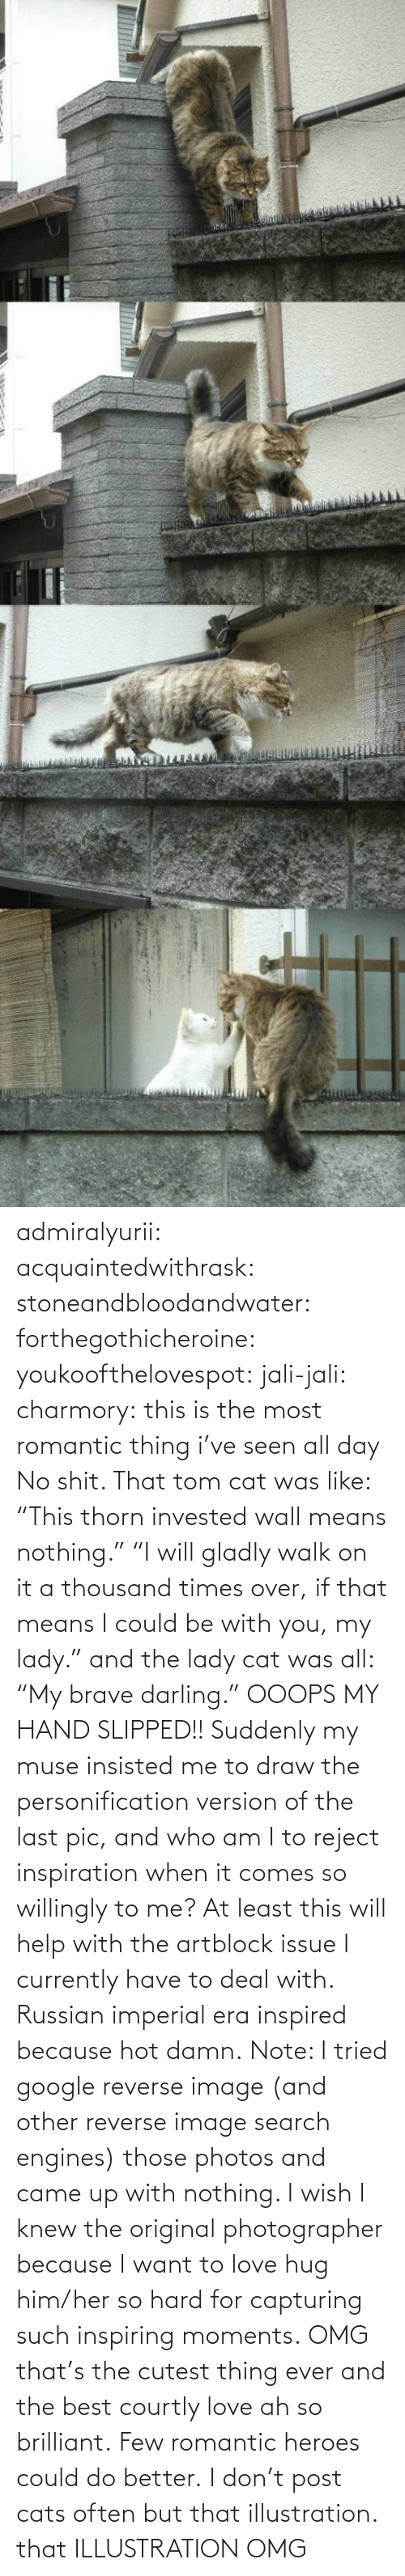 "com: admiralyurii: acquaintedwithrask:  stoneandbloodandwater:  forthegothicheroine:  youkoofthelovespot:  jali-jali:  charmory:  this is the most romantic thing i've seen all day  No shit. That tom cat was like: ""This thorn invested wall means nothing."" ""I will gladly walk on it a thousand times over, if that means I could be with you, my lady."" and the lady cat was all: ""My brave darling."" OOOPS MY HAND SLIPPED!!  Suddenly my muse insisted me to draw the personification version of the last pic, and who am I to reject inspiration when it comes so willingly to me? At least this will help with the artblock issue I currently have to deal with. Russian imperial era inspired because hot damn. Note: I tried google reverse image (and other reverse image search engines) those photos and came up with nothing. I wish I knew the original photographer because I want to love hug him/her so hard for capturing such inspiring moments.  OMG that's the cutest thing ever and the best courtly love ah so brilliant.  Few romantic heroes could do better.  I don't post cats often but that illustration.  that ILLUSTRATION    OMG"